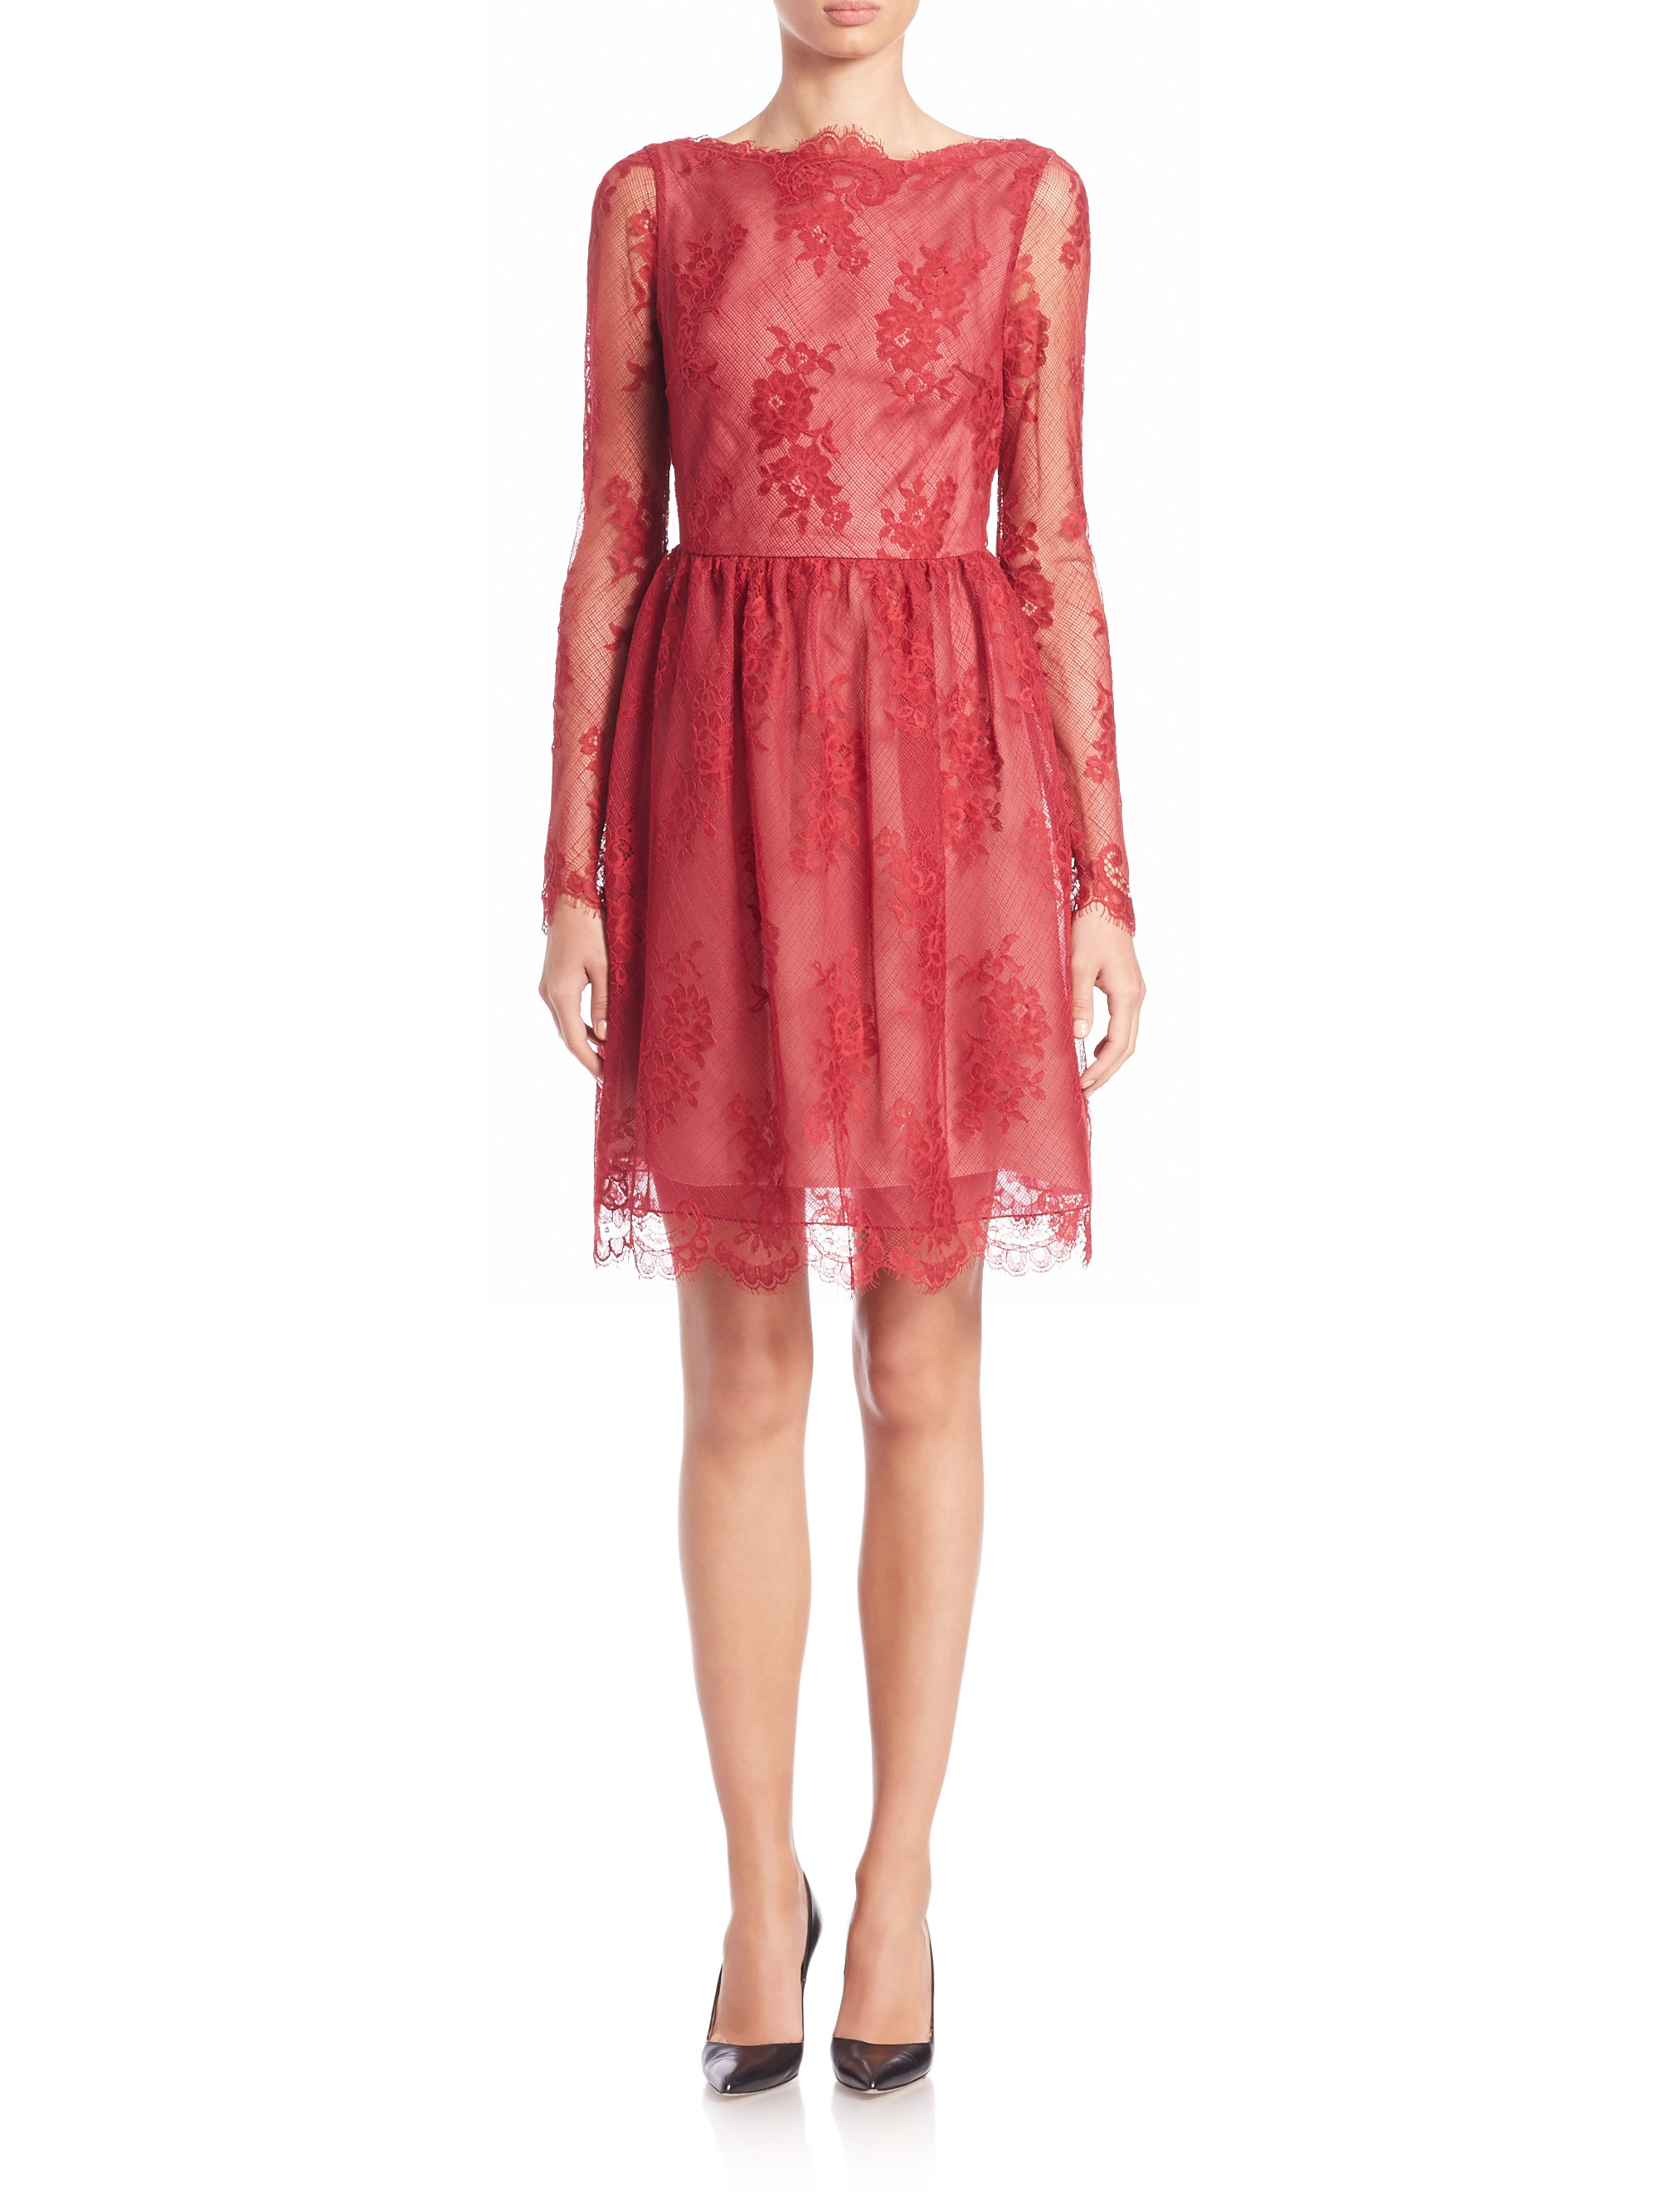 Erdem Dolores Lace Dress in Red - Lyst